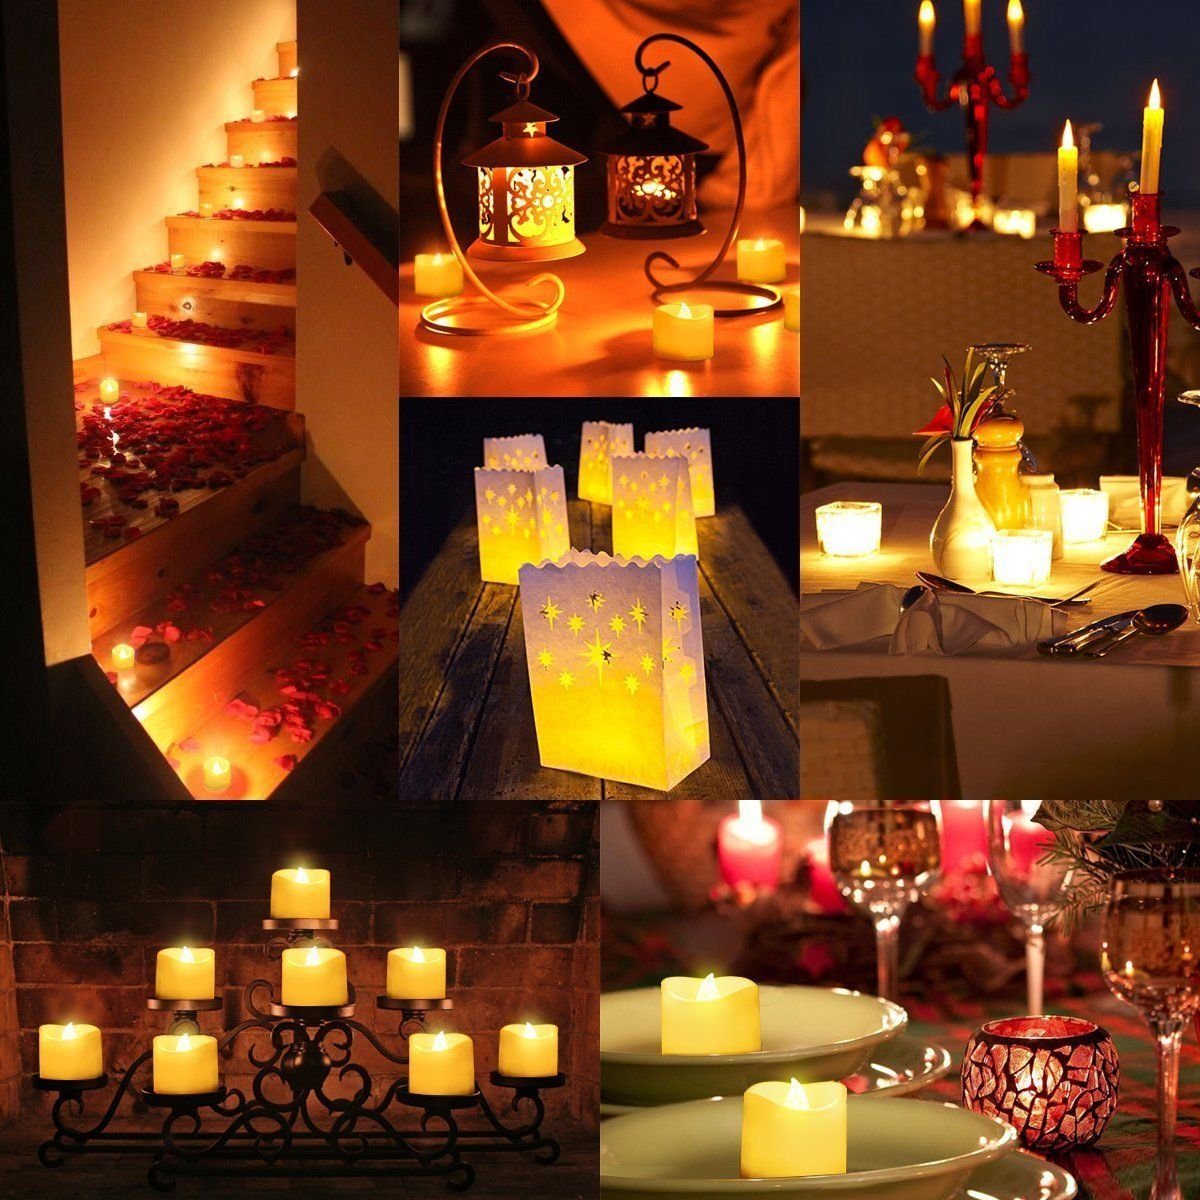 Kohree Flameless Candles Light LED Candles with Built-in Daily-Cycle Timer, Outdoor Battery Operated Led Real Wax Candles Light, Pillar Candle, Warm White Pack of 12 by Kohree (Image #4)